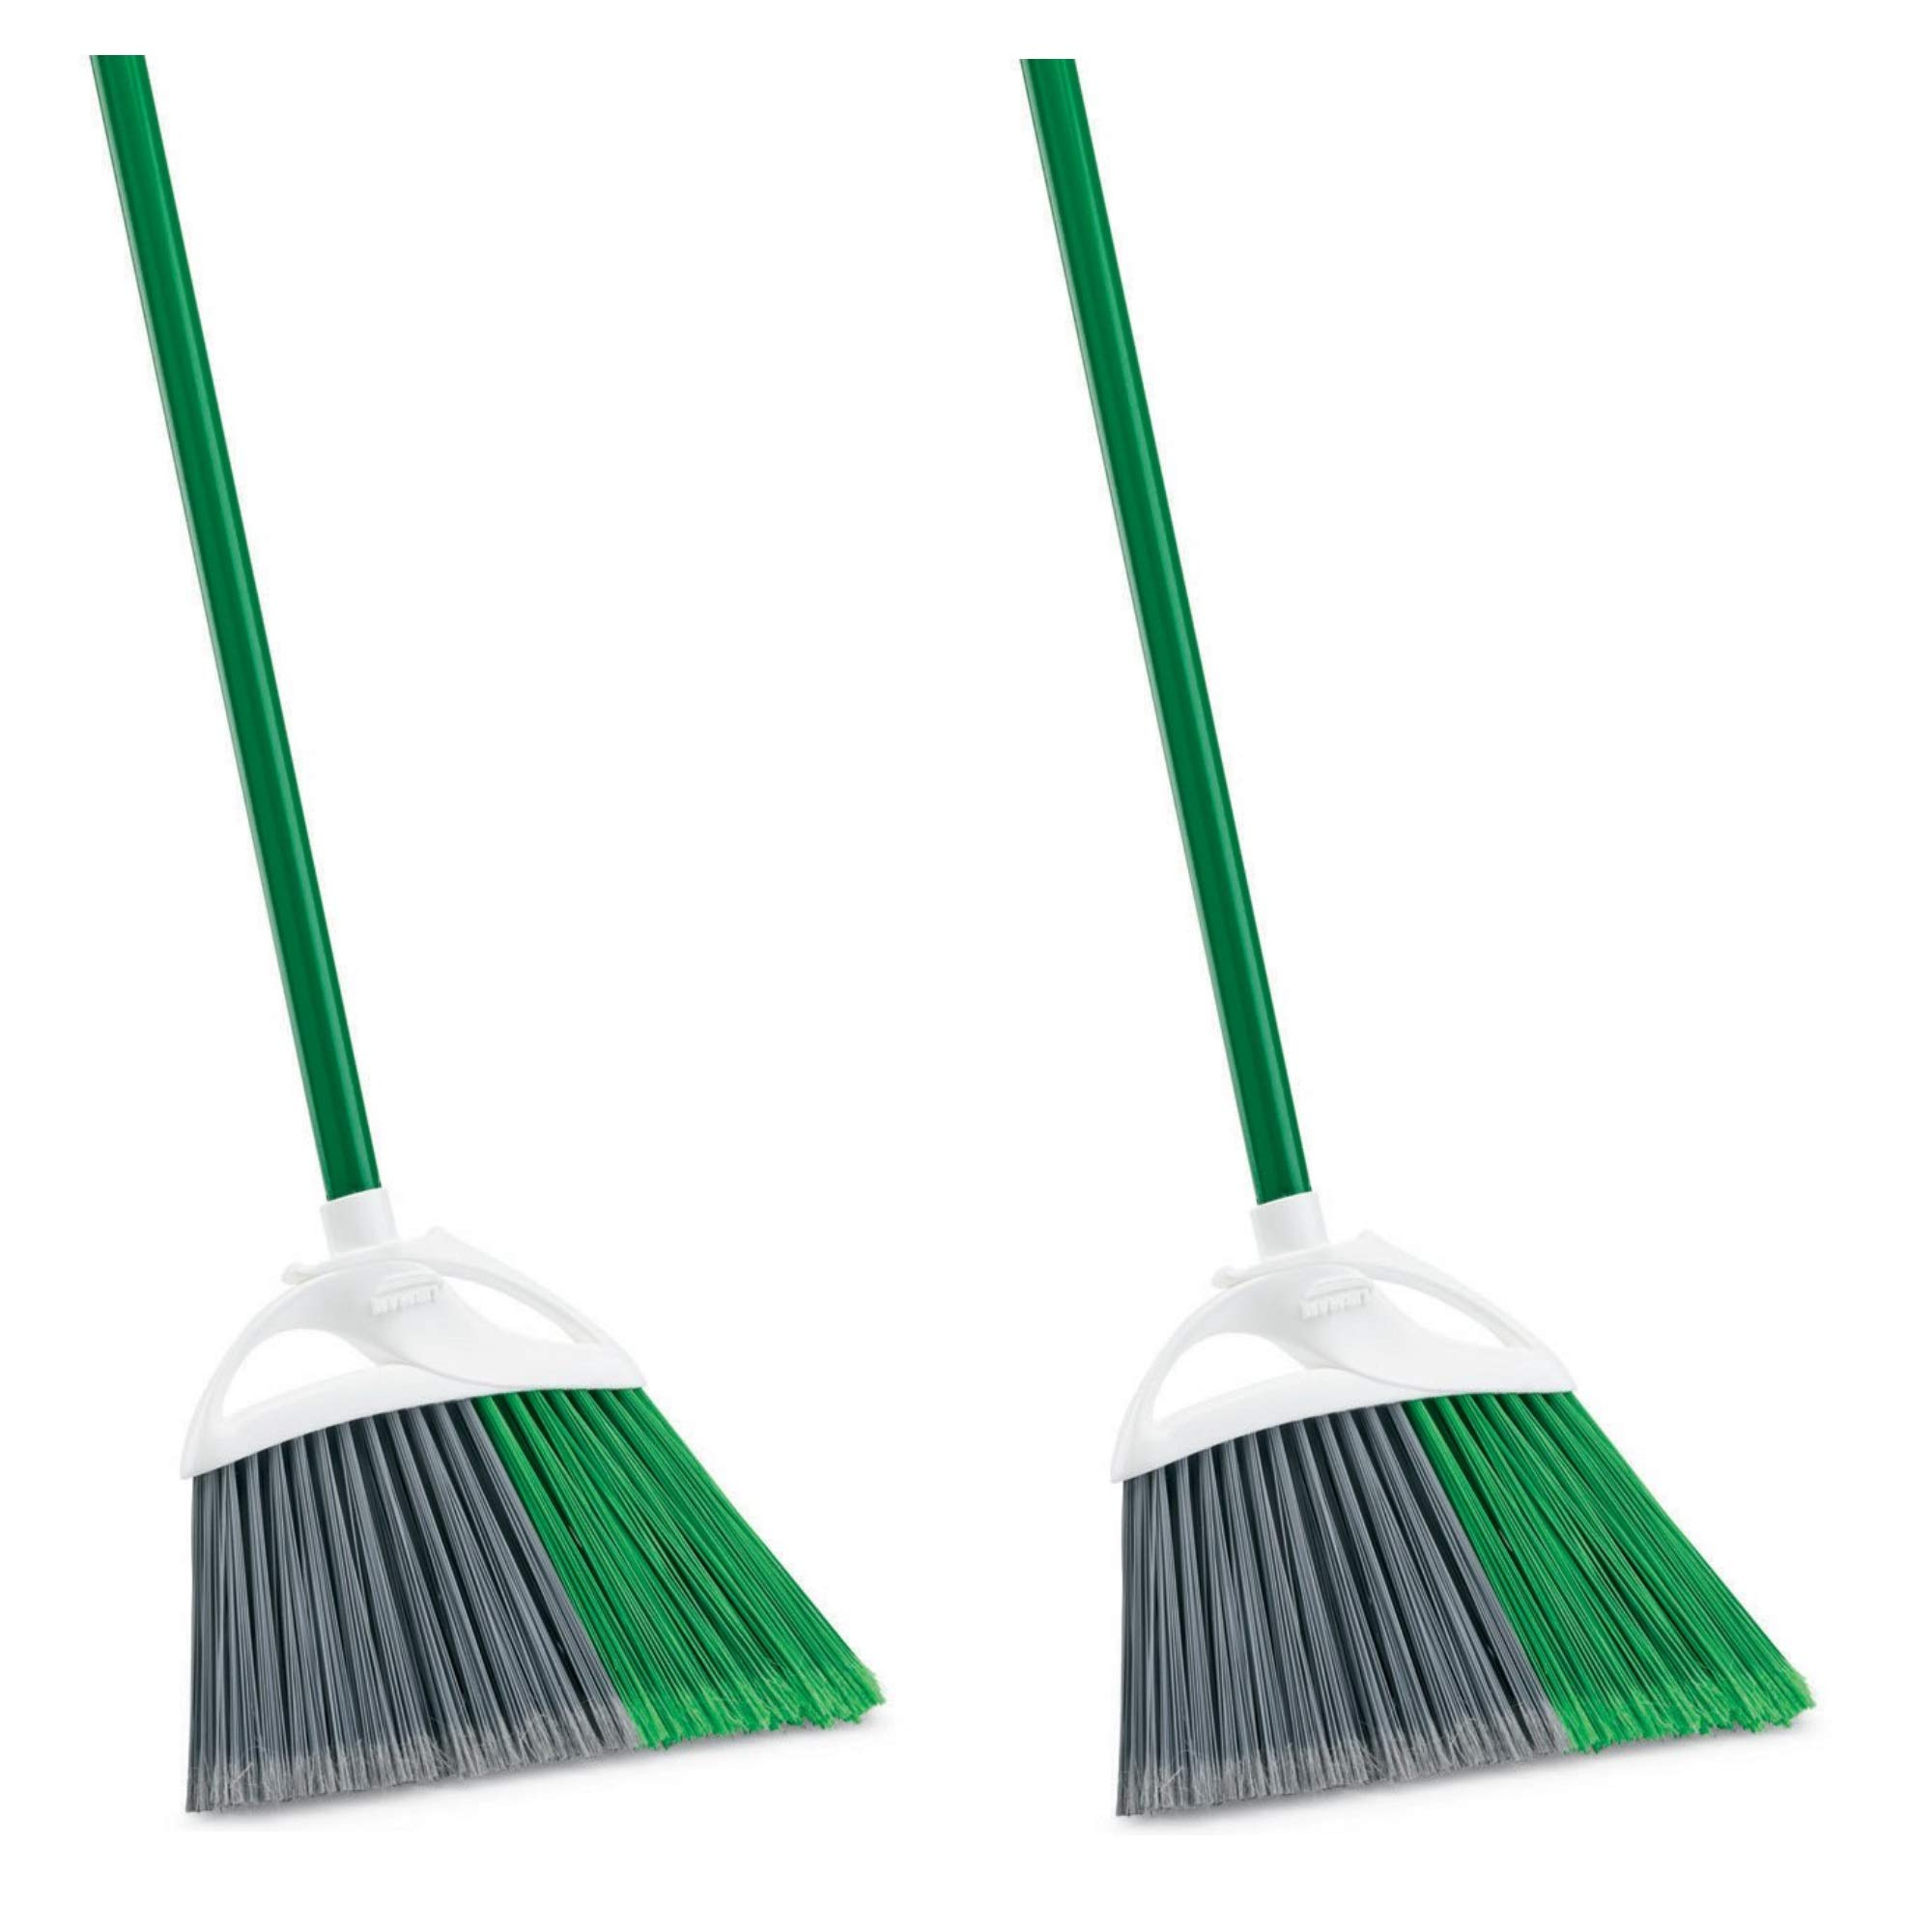 Libman 201 Precision Angle Broom with Recycled Broom Fibers, 2 Pack